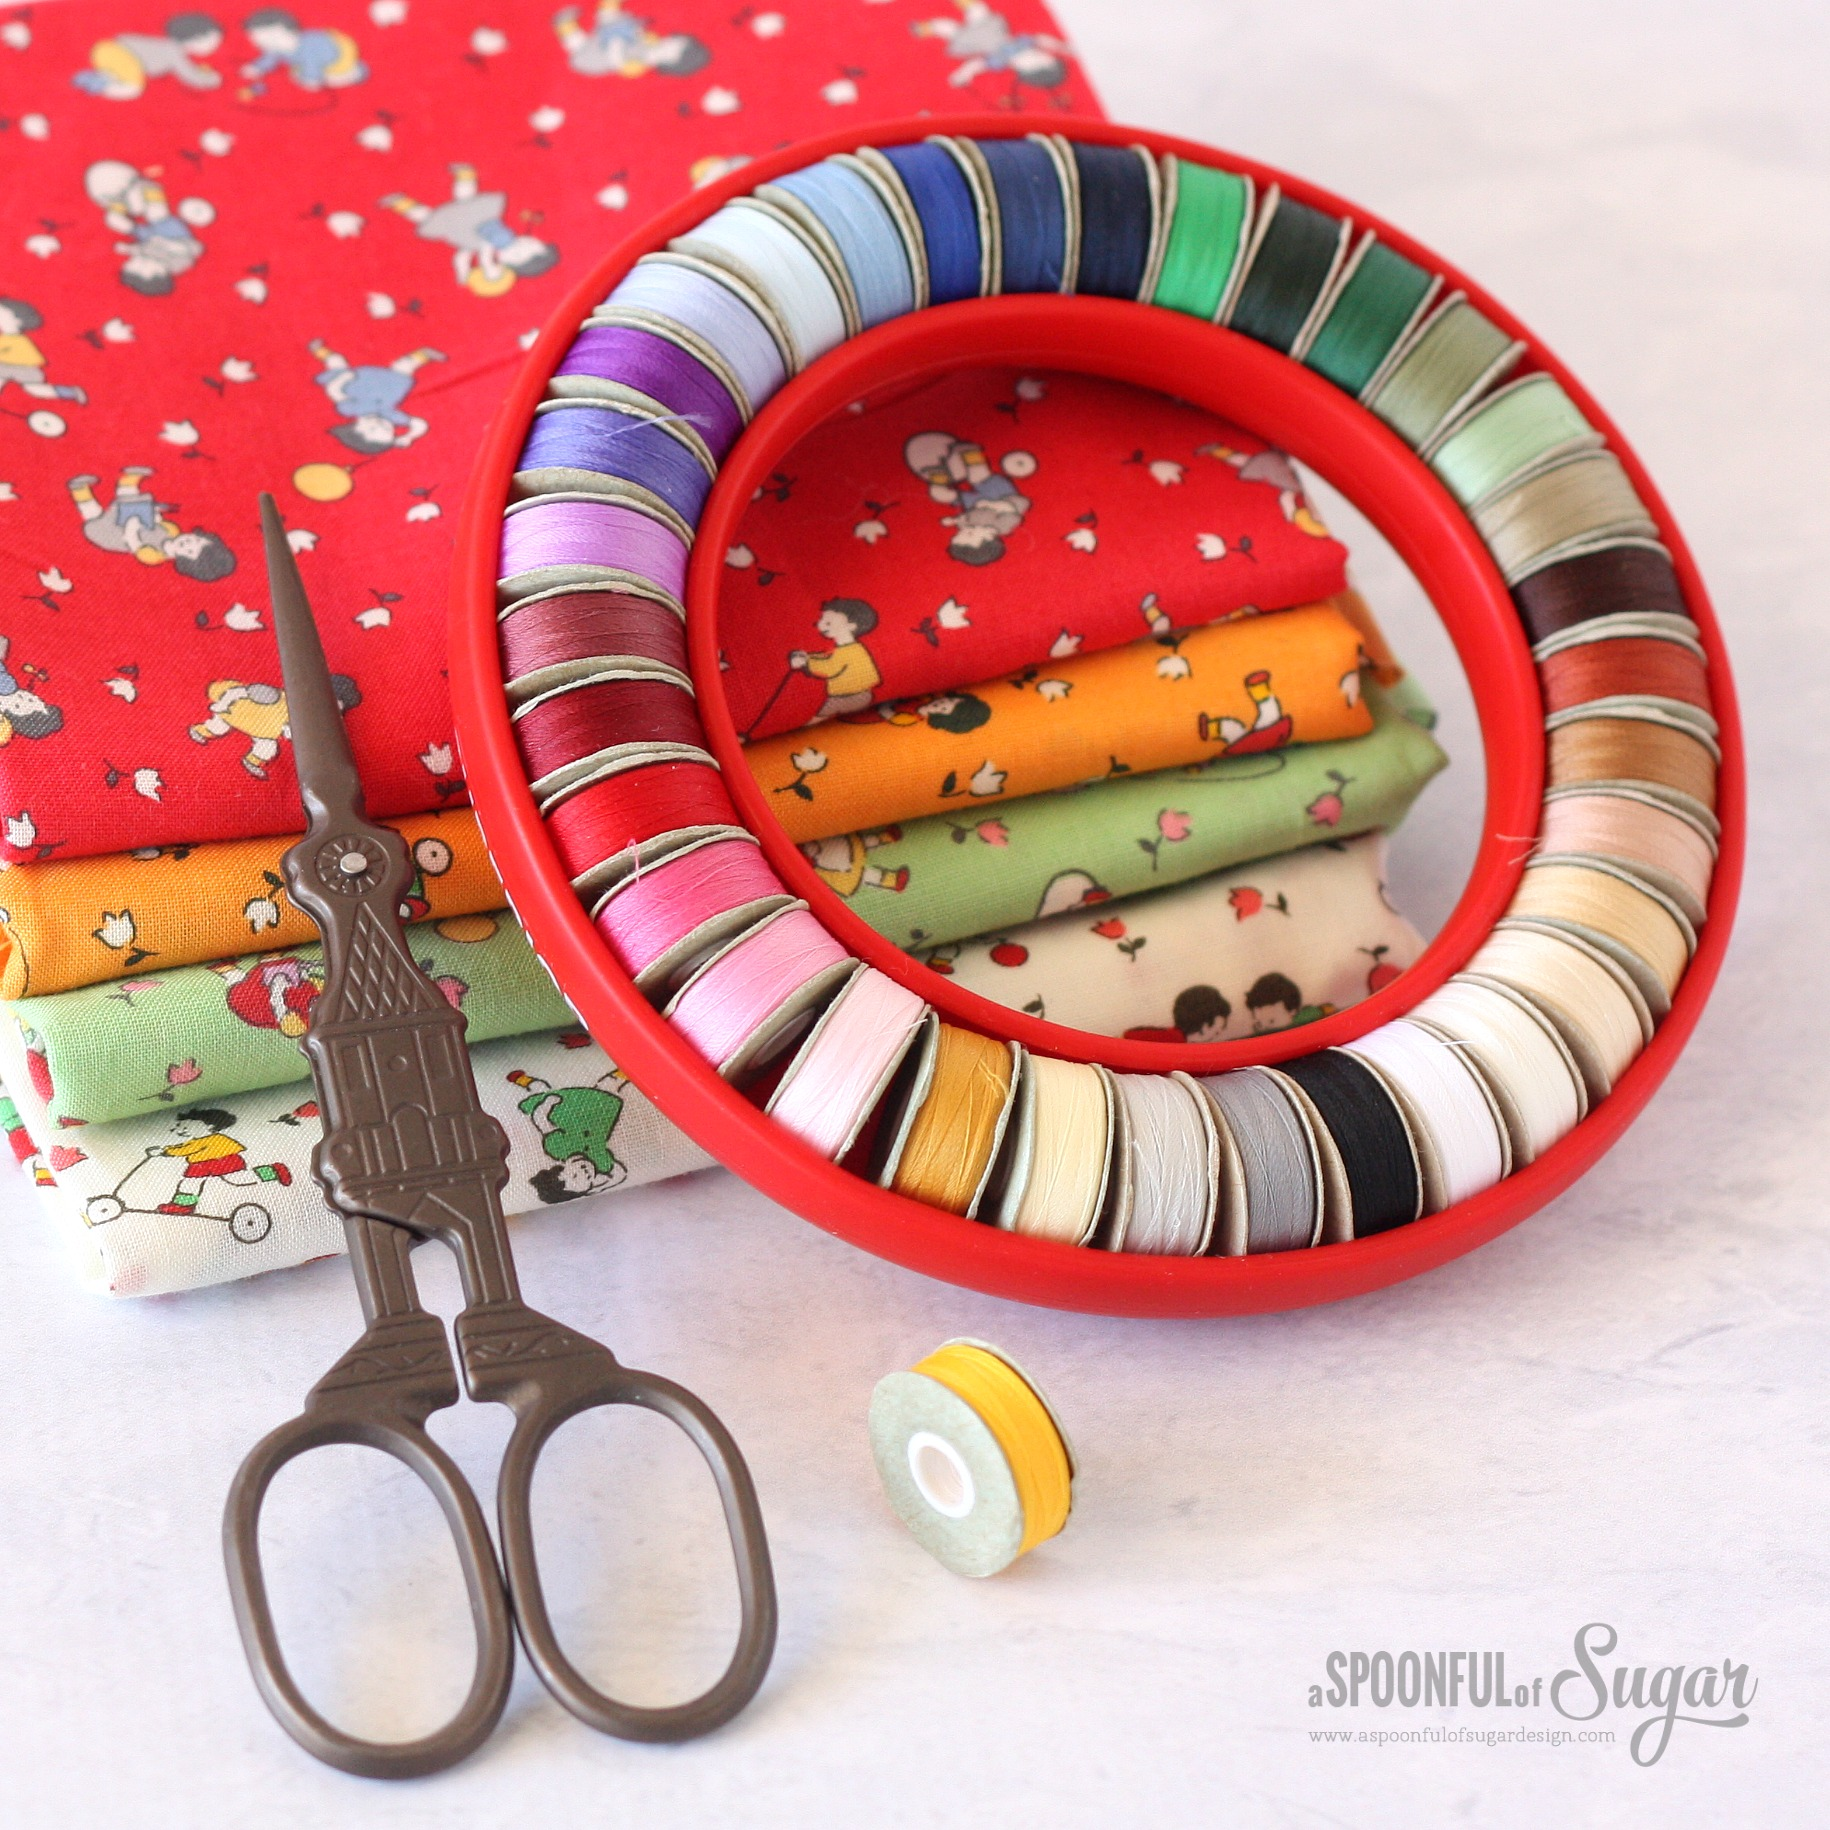 Sewing Tool Roundup featuring a review of new sewing tools and products.